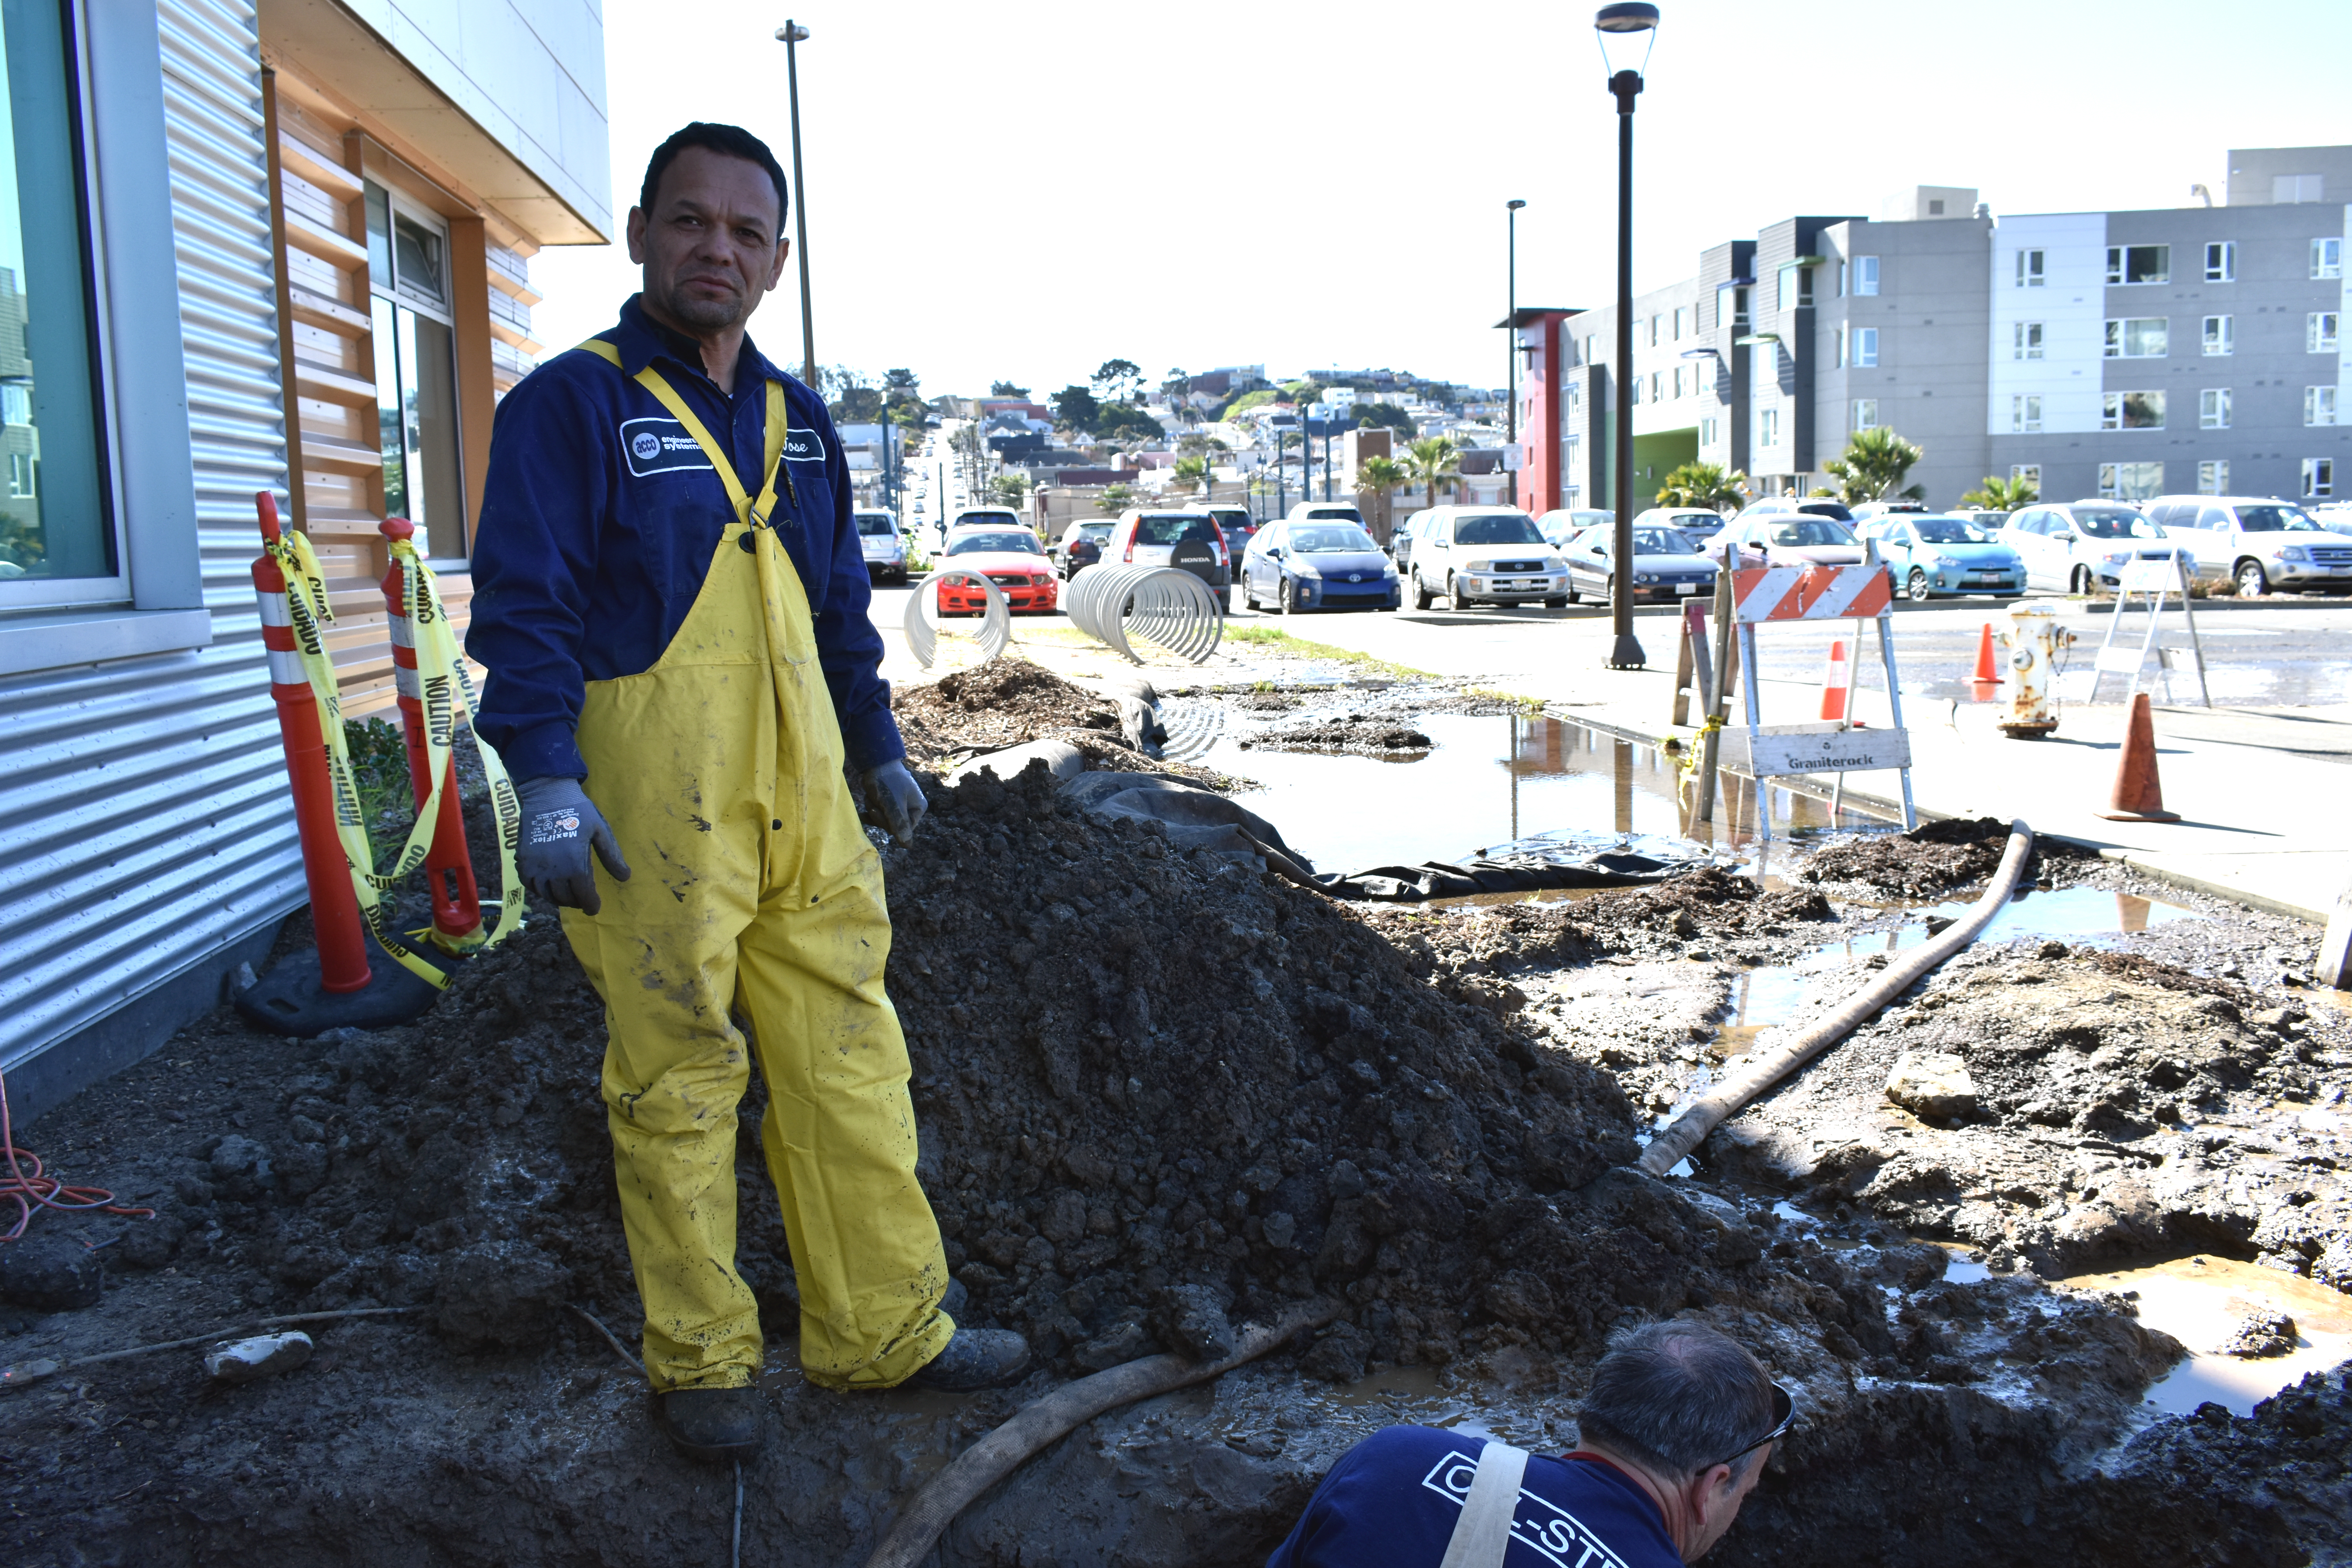 (L-R) ACC Engineering Systems Plumber Jose Lopez and a man who goes by Dave The Plumber finish digging a hole to uncover the source of a water leak at the Ocean Campus Multi-Use Building (MUB) on Feb. 15, 2018. Photo by Michael Menaster/The Guardsman.